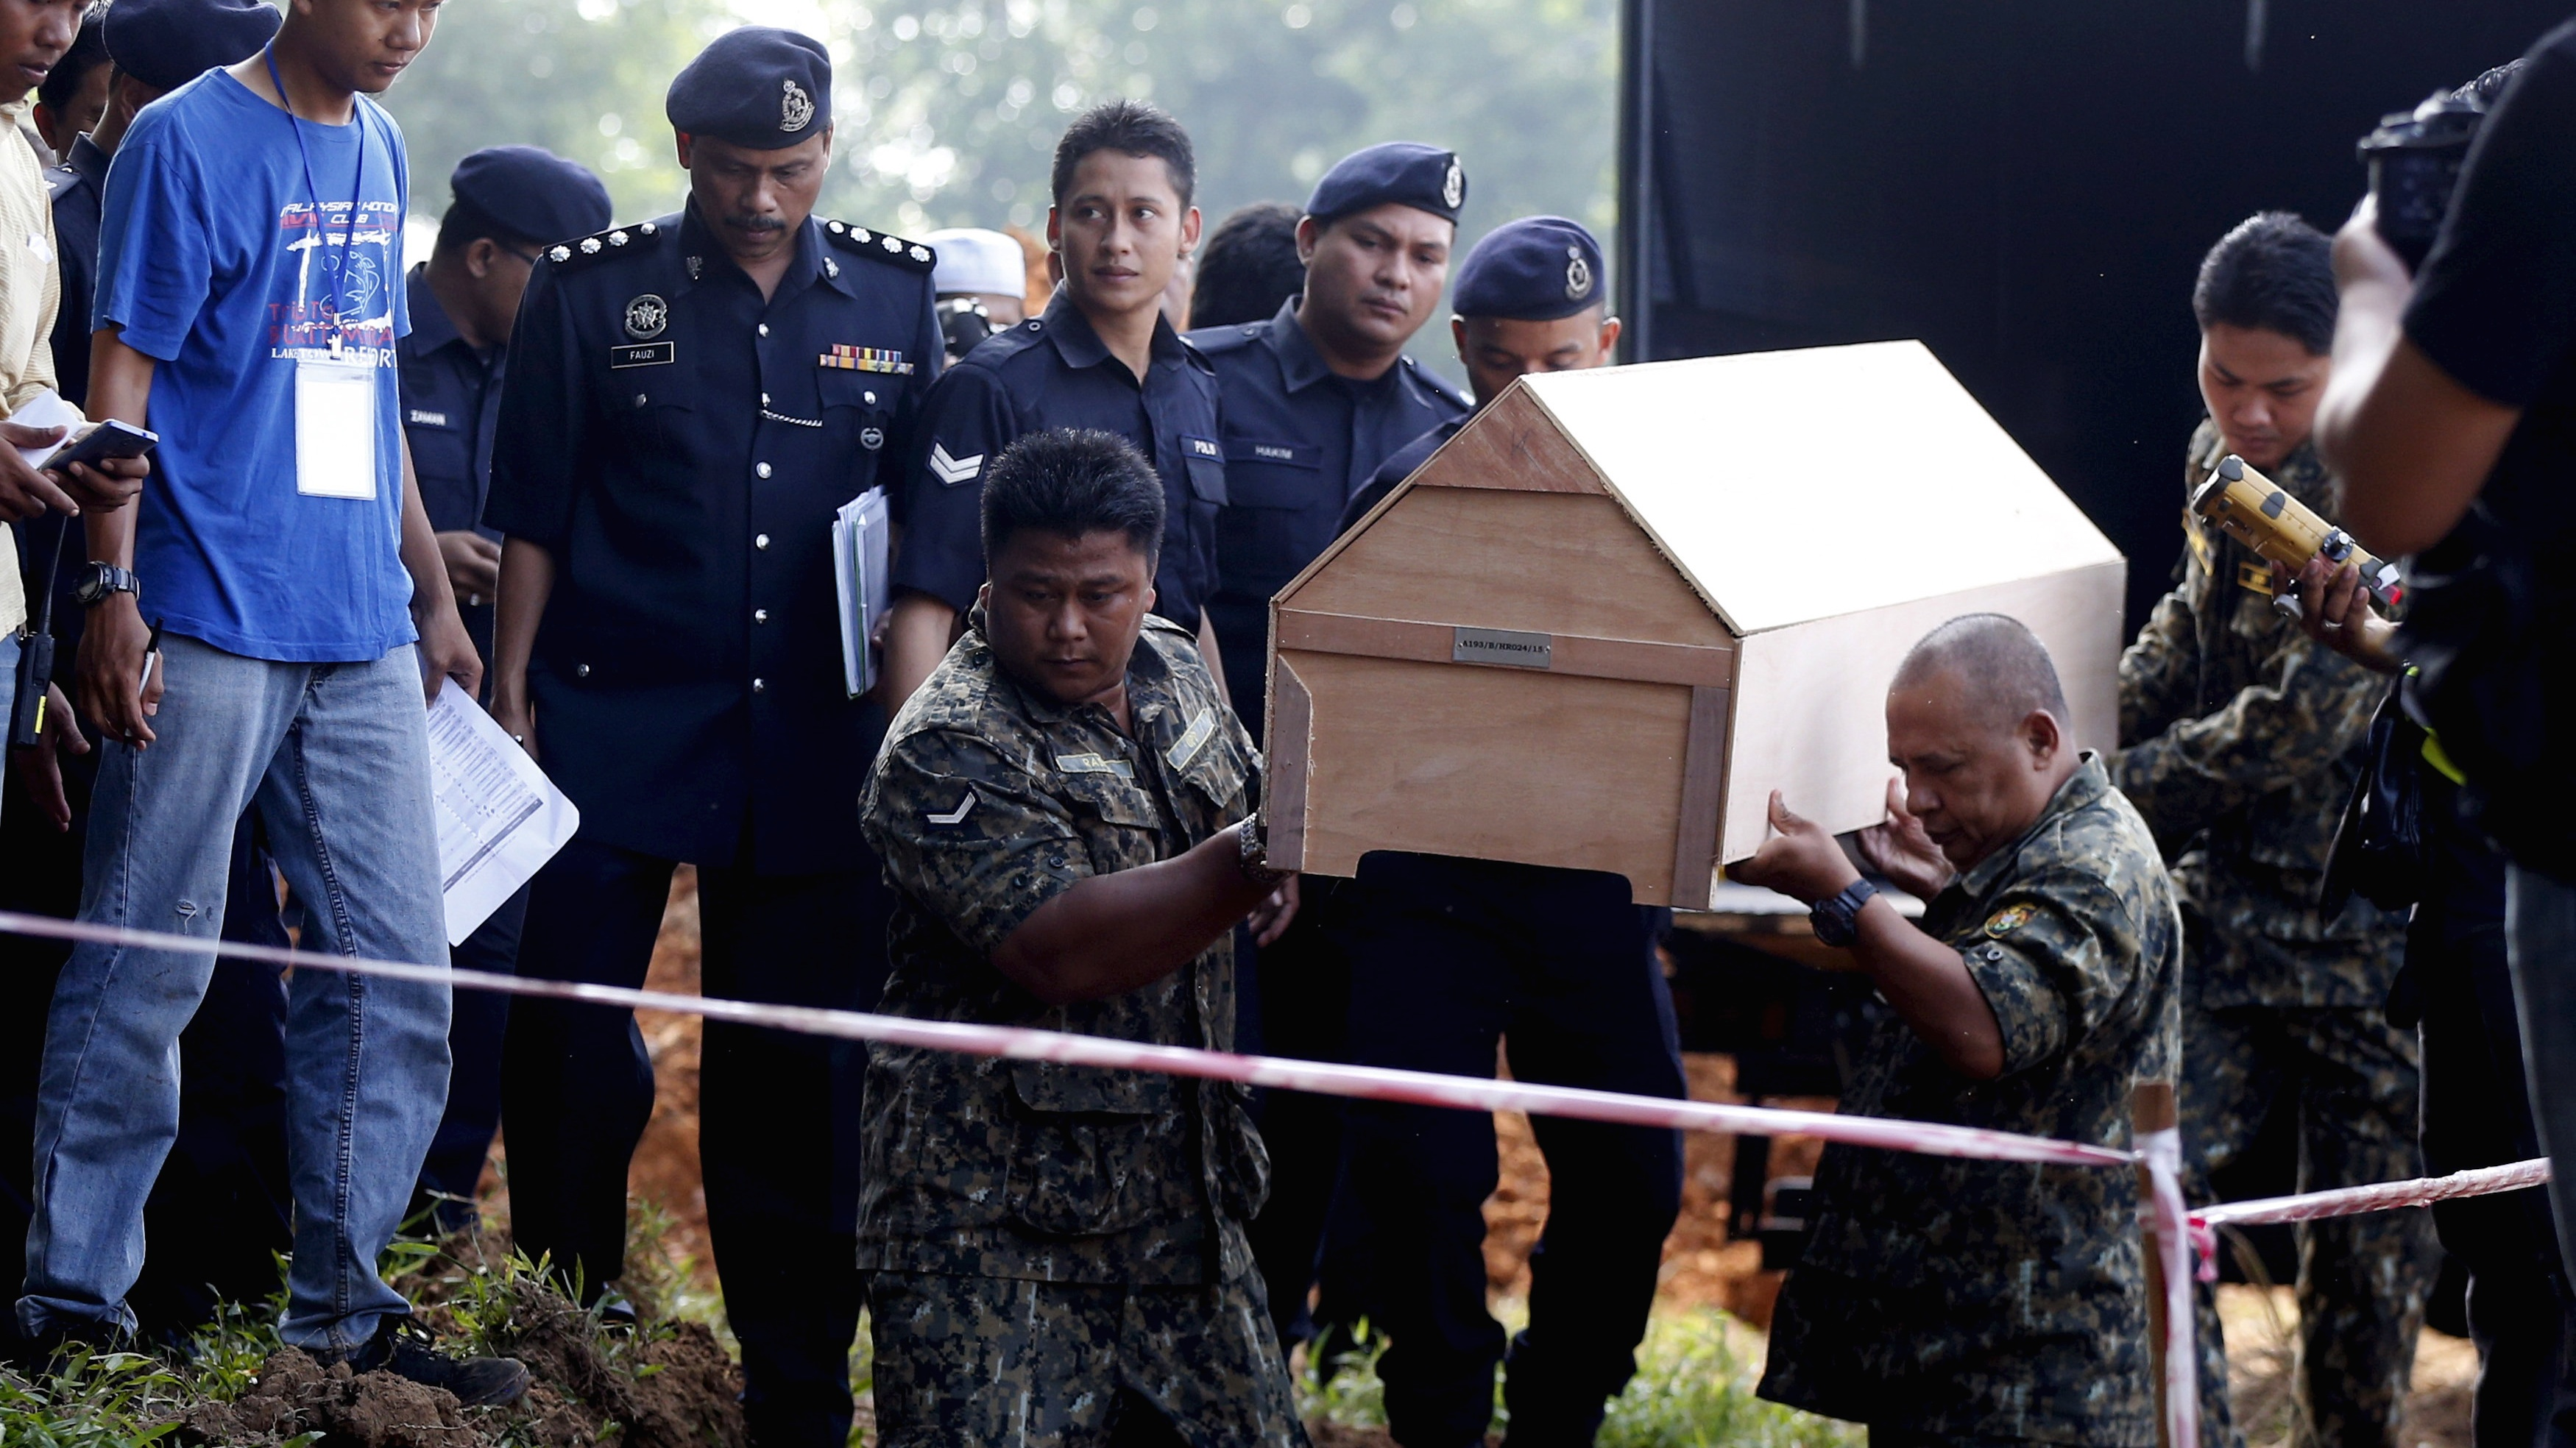 Malaysian police carry a coffin with unidentified remains of Rohingya people found at a traffickers camp on the border with Thailand.